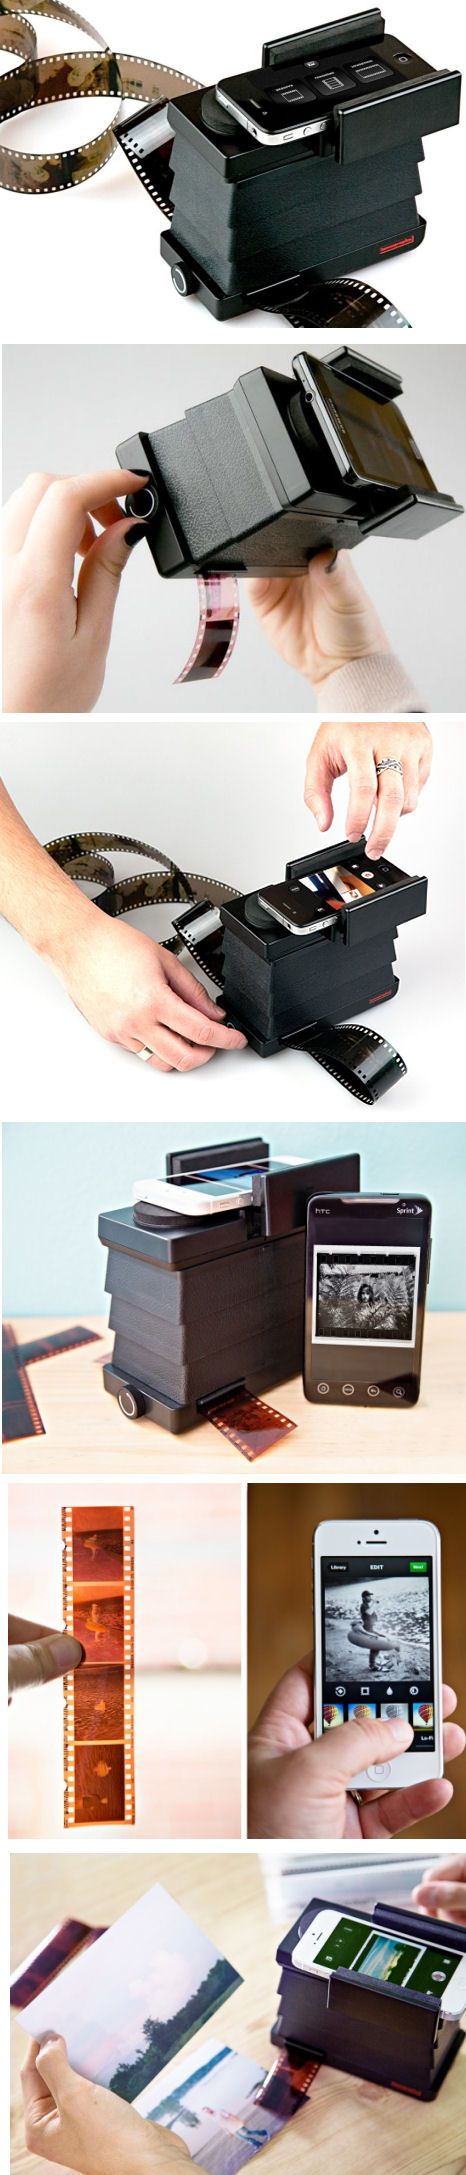 Smartphone Film Scanner - light, portable device that quickly and easily converts 35mm film into digital images. Use the free LomoScanner app or your phone's camera to edit, email, post, and print your pics to your heart's content.